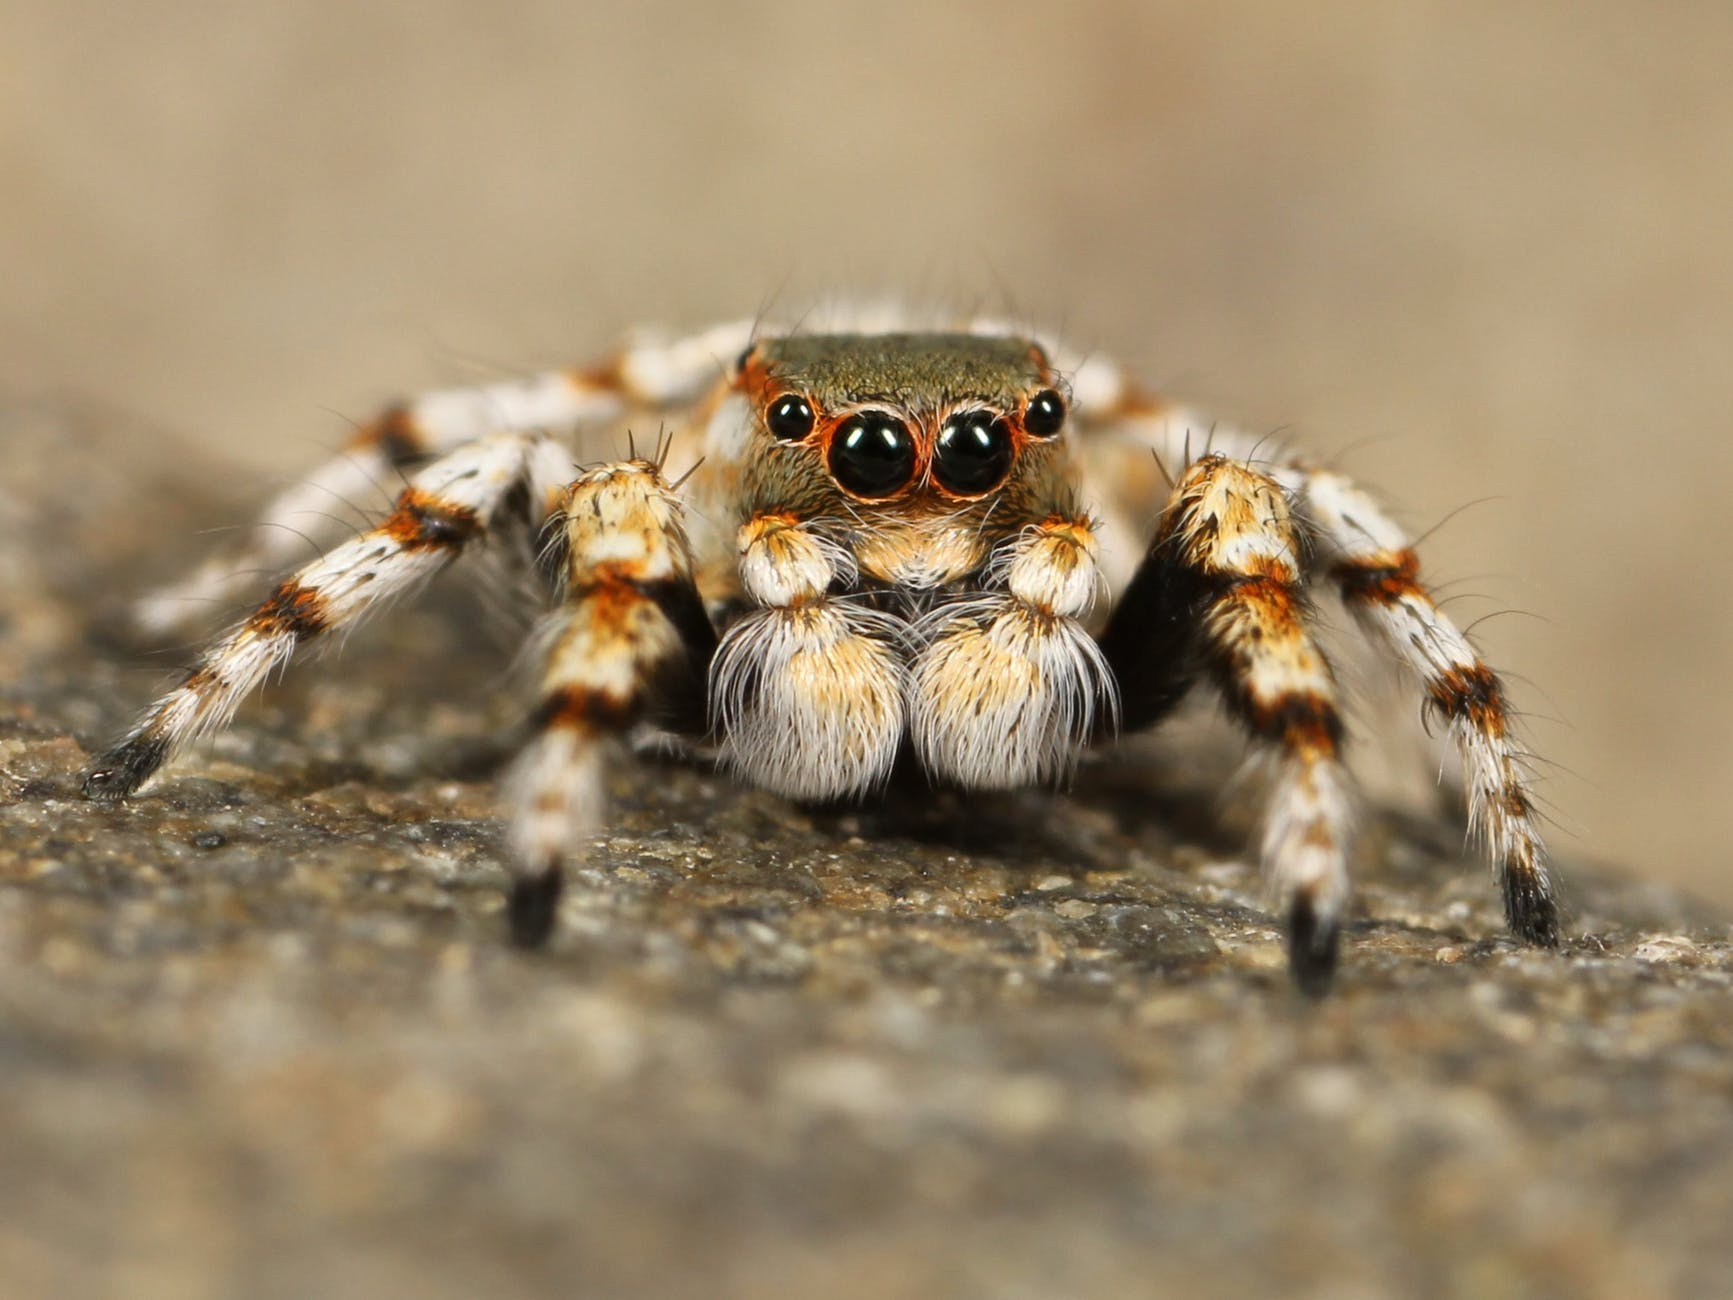 jumping-spider-tarantula-bird-spider-insect-68186.jpeg